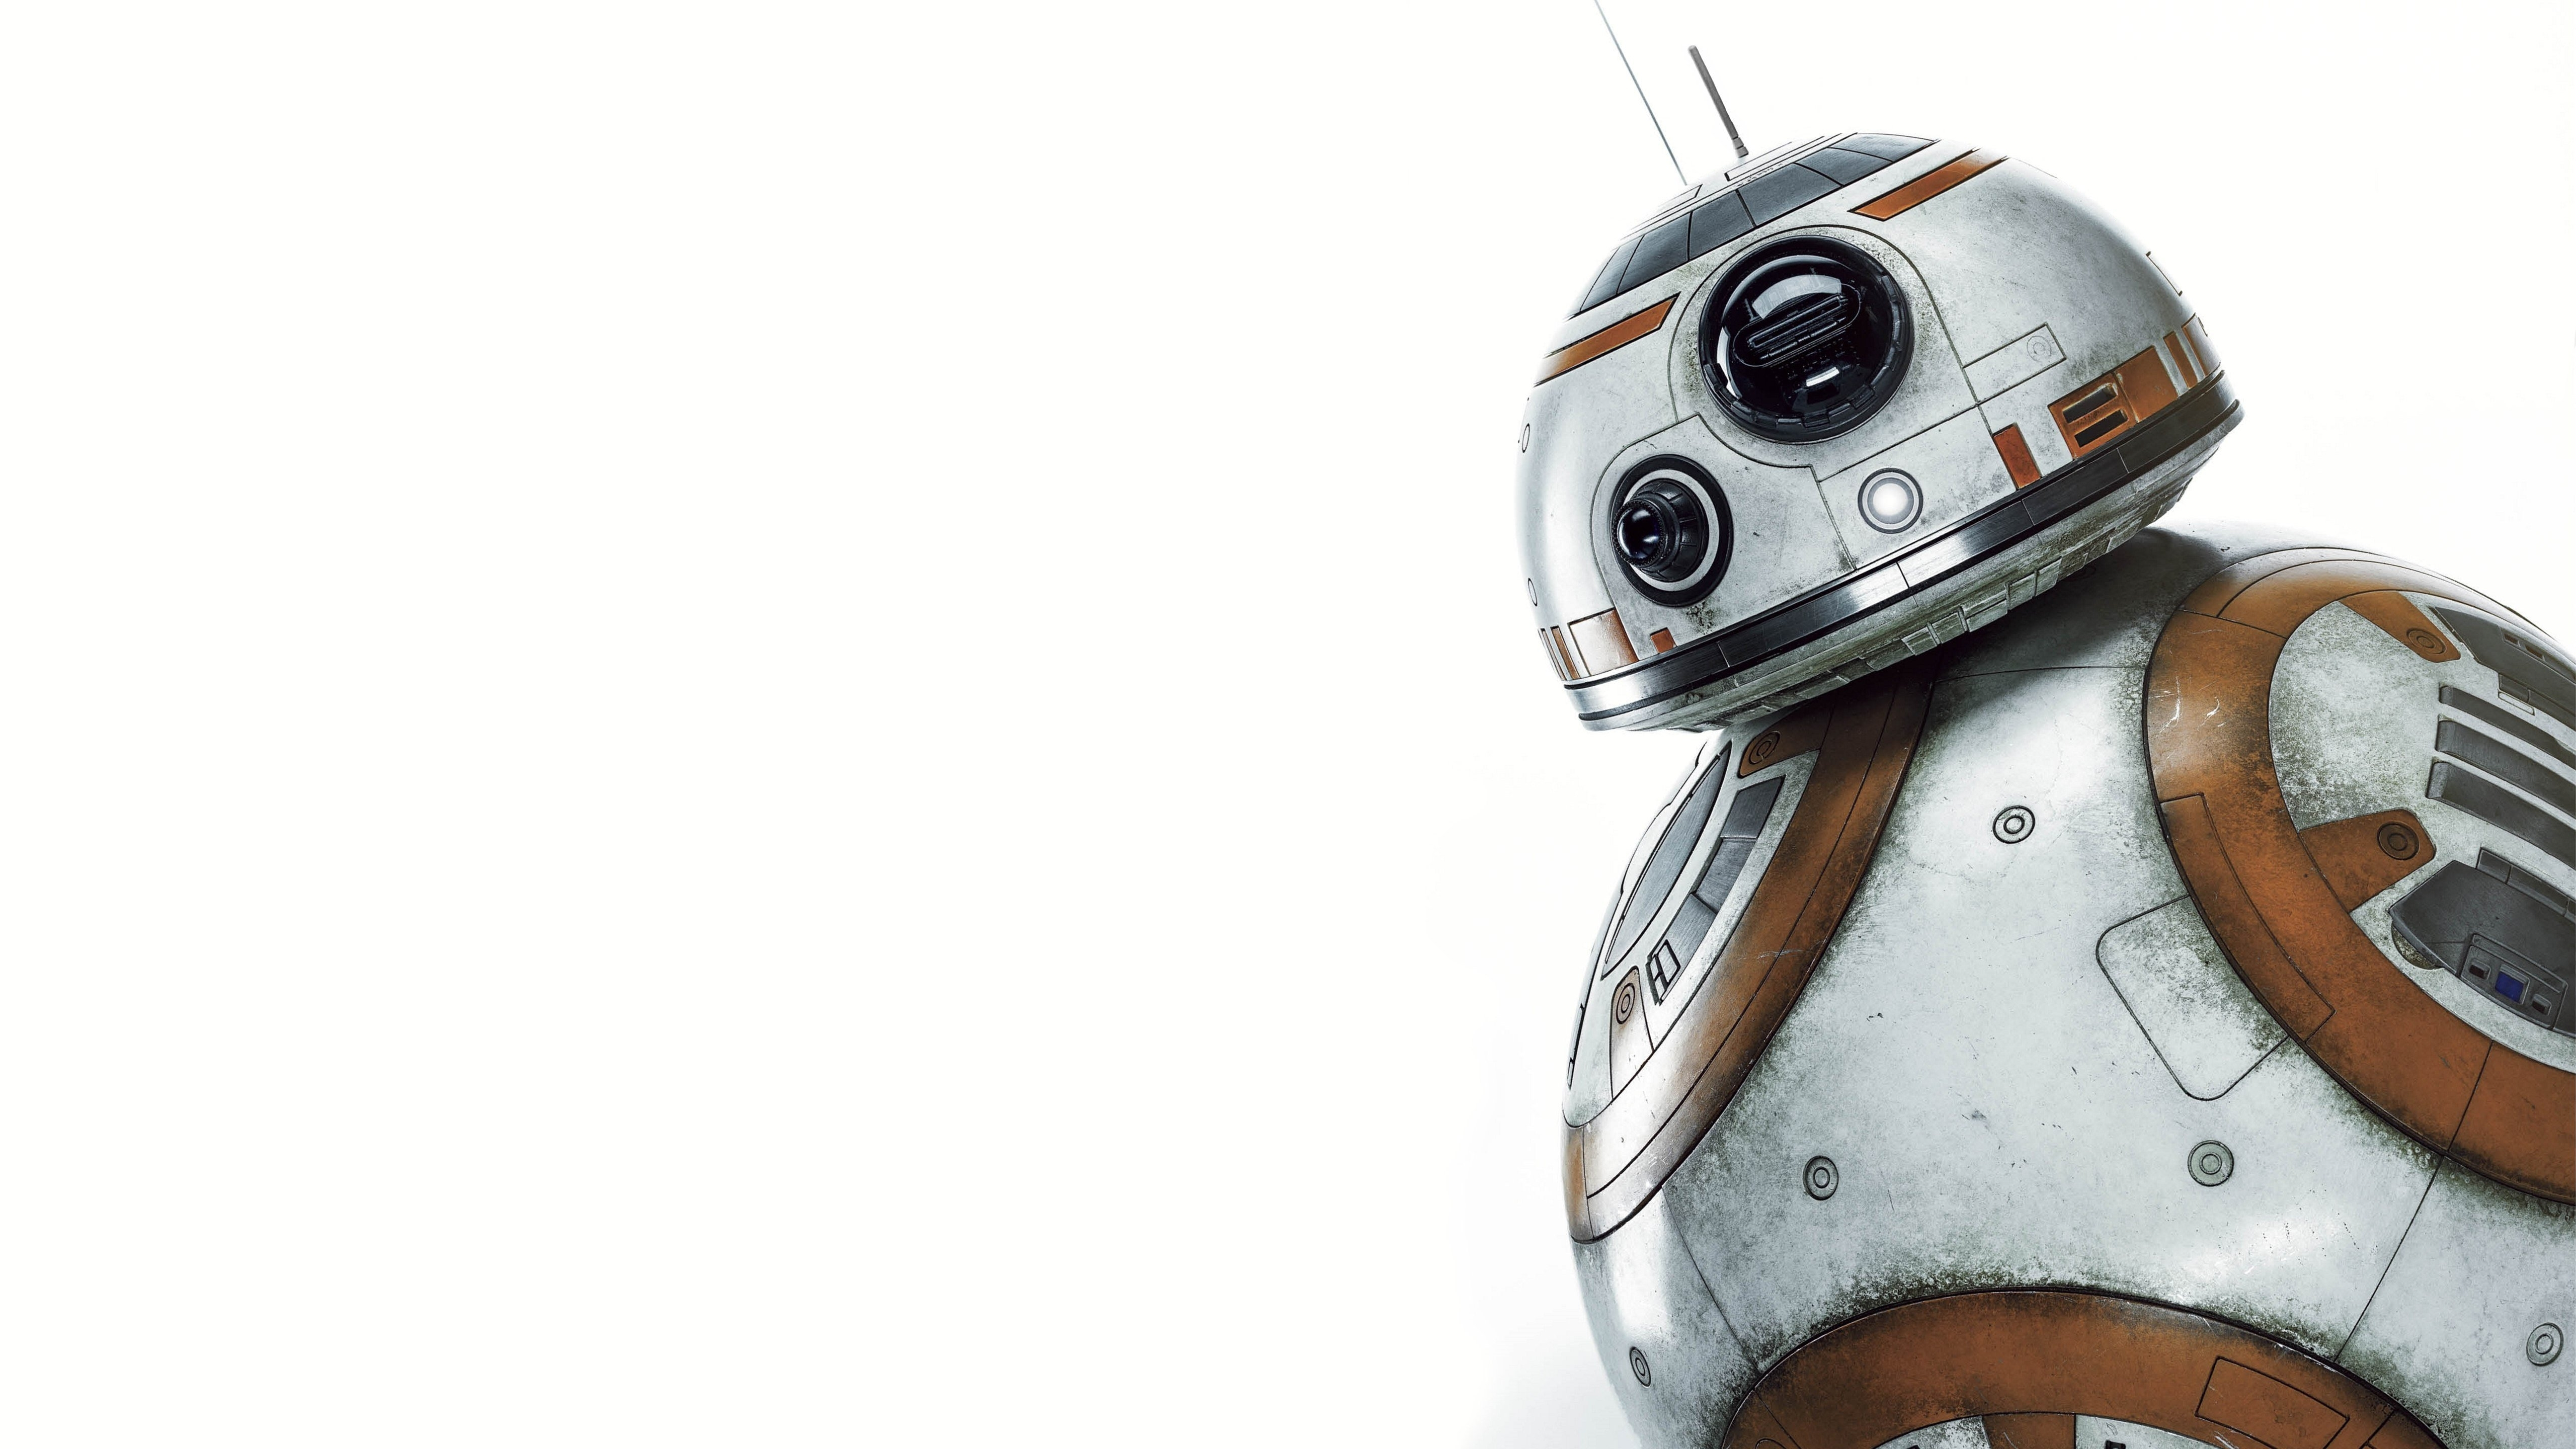 5120x2880 star wars bb droid 5k hd 4k wallpapers, images